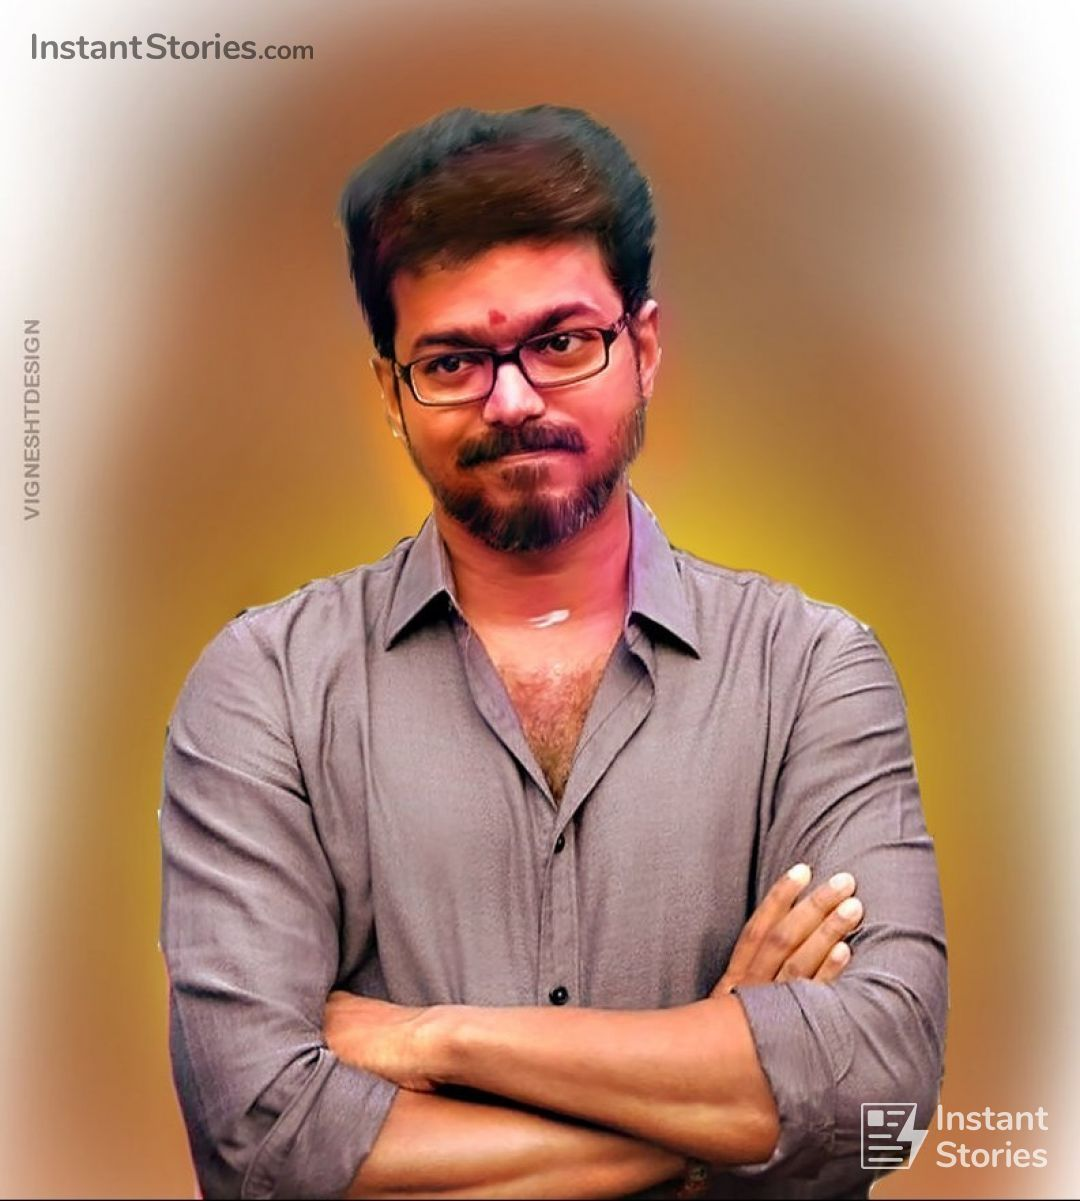 Vijay Full Hd Wallpapers Wallpaper Cave Awesome vijay wallpaper for desktop, table, and mobile. vijay full hd wallpapers wallpaper cave